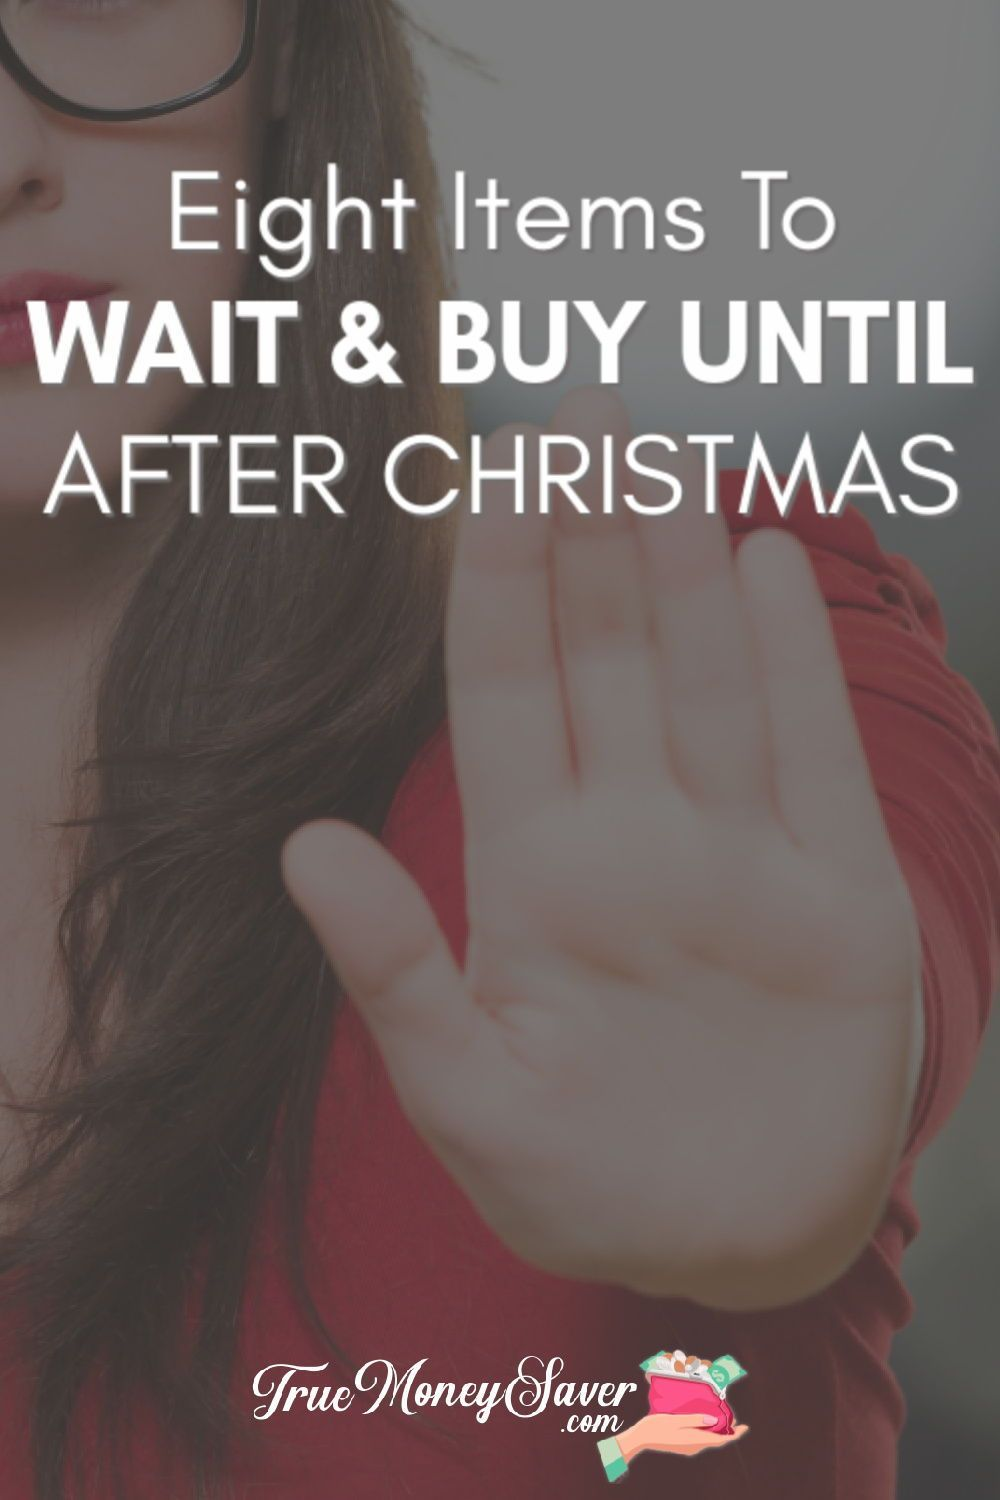 What after Christmas deals are you waiting for? Here are my things to wait until after Christmas to buy! These things to buy after Christmas will help your budget all year long! Don't miss these deals to get during the after Christmas sales! Star your list here! #truemoneysaver #christmas #christmasdeals #gooddeals #christmassale #afterchristmassale #afterchristmasdeals #savingmoney #afterchristmasclearance #christmasclearance